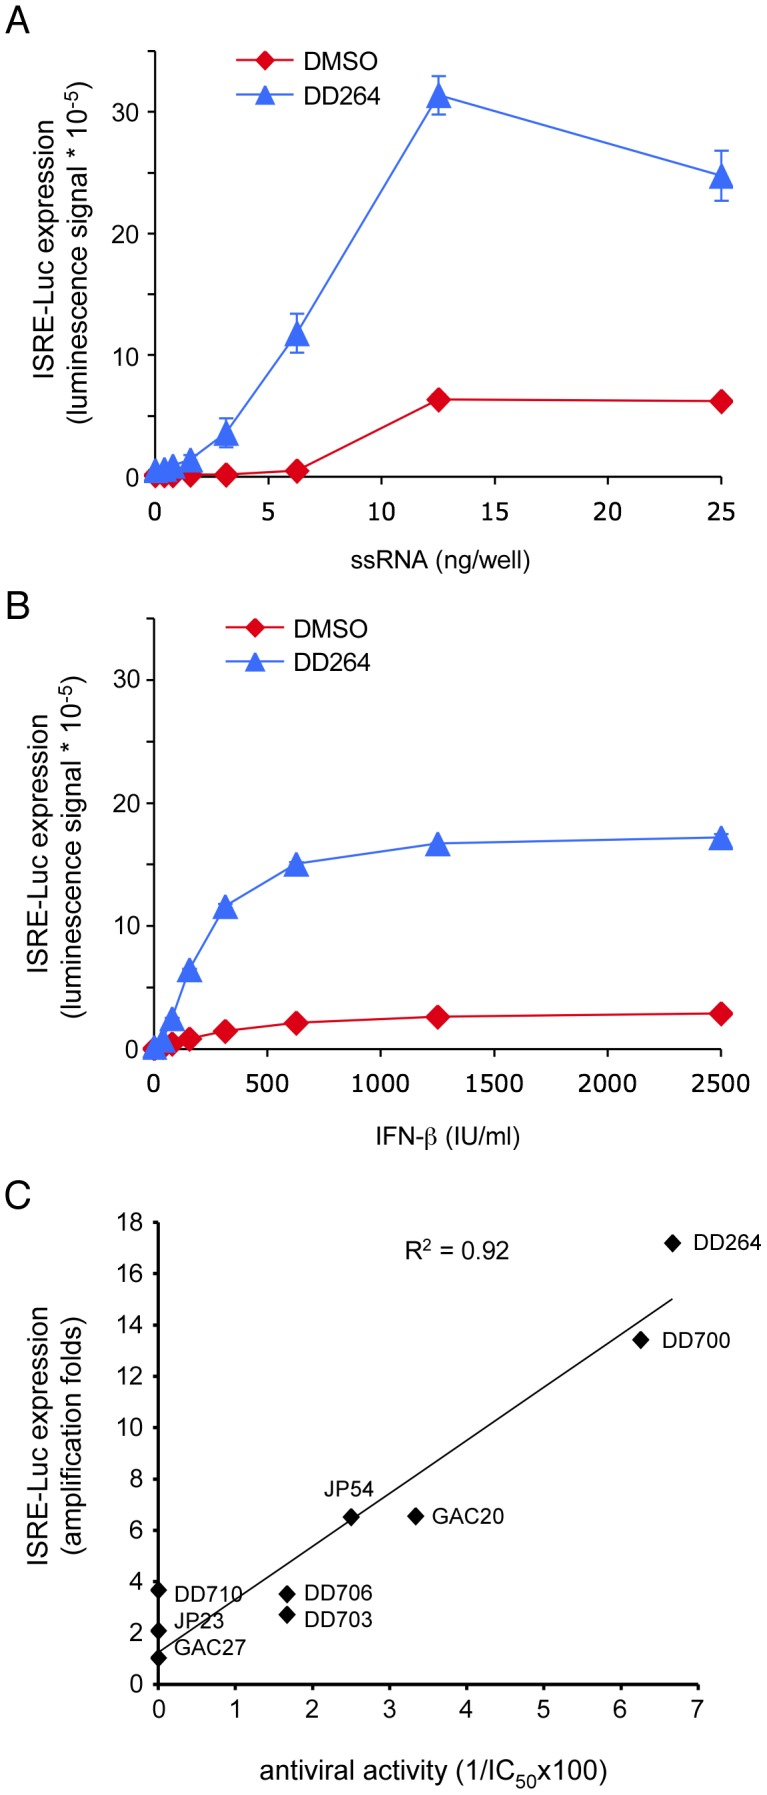 DD264 amplifies cellular response to transfection of PAMP-like ssRNA molecules or IFN-β stimulation, and this correlates with its antiviral activity. ( A ) HEK-293 cells with the ISRE-luciferase reporter gene (STING-37 cells) were transfected with increasing doses of synthetic 5′-triphosphate RNA molecules (ssRNA), and incubated in the presence of DD264 (80 µM) or DMSO alone in 96-well cultures plates. After 24 hours, luciferase expression was determined. ( B ) HEK-293 cells with the ISRE-luciferase reporter gene (STING-37 cells) were transfected with increasing doses of recombinant IFN-β, and incubated in the presence of DD264 (80 µM) or DMSO alone in 96-well culture plates. After 24 hours, luciferase expression was determined. Experiments (A) and (B) were performed in duplicate, and data represent means ± SD. ( C ) Eight molecules were randomly picked among analogs of DD264 (see Table S2 ) to build a set of compounds with a range of antiviral activities from null to high as determined by their potency to inhibit MV-Luc replication. Then, the selected molecules were tested for the amplification ISRE-luciferase expression when stimulating cells with suboptimal doses of ssRNA (6 ng/well) as described in (A). Finally, for DD264 and selected analogs, the capacity to amplify cellular response to ssRNA was plotted as a function of the antiviral activity by means of the experimental IC 50 values (antiviral activity = 1/IC 50 *100).